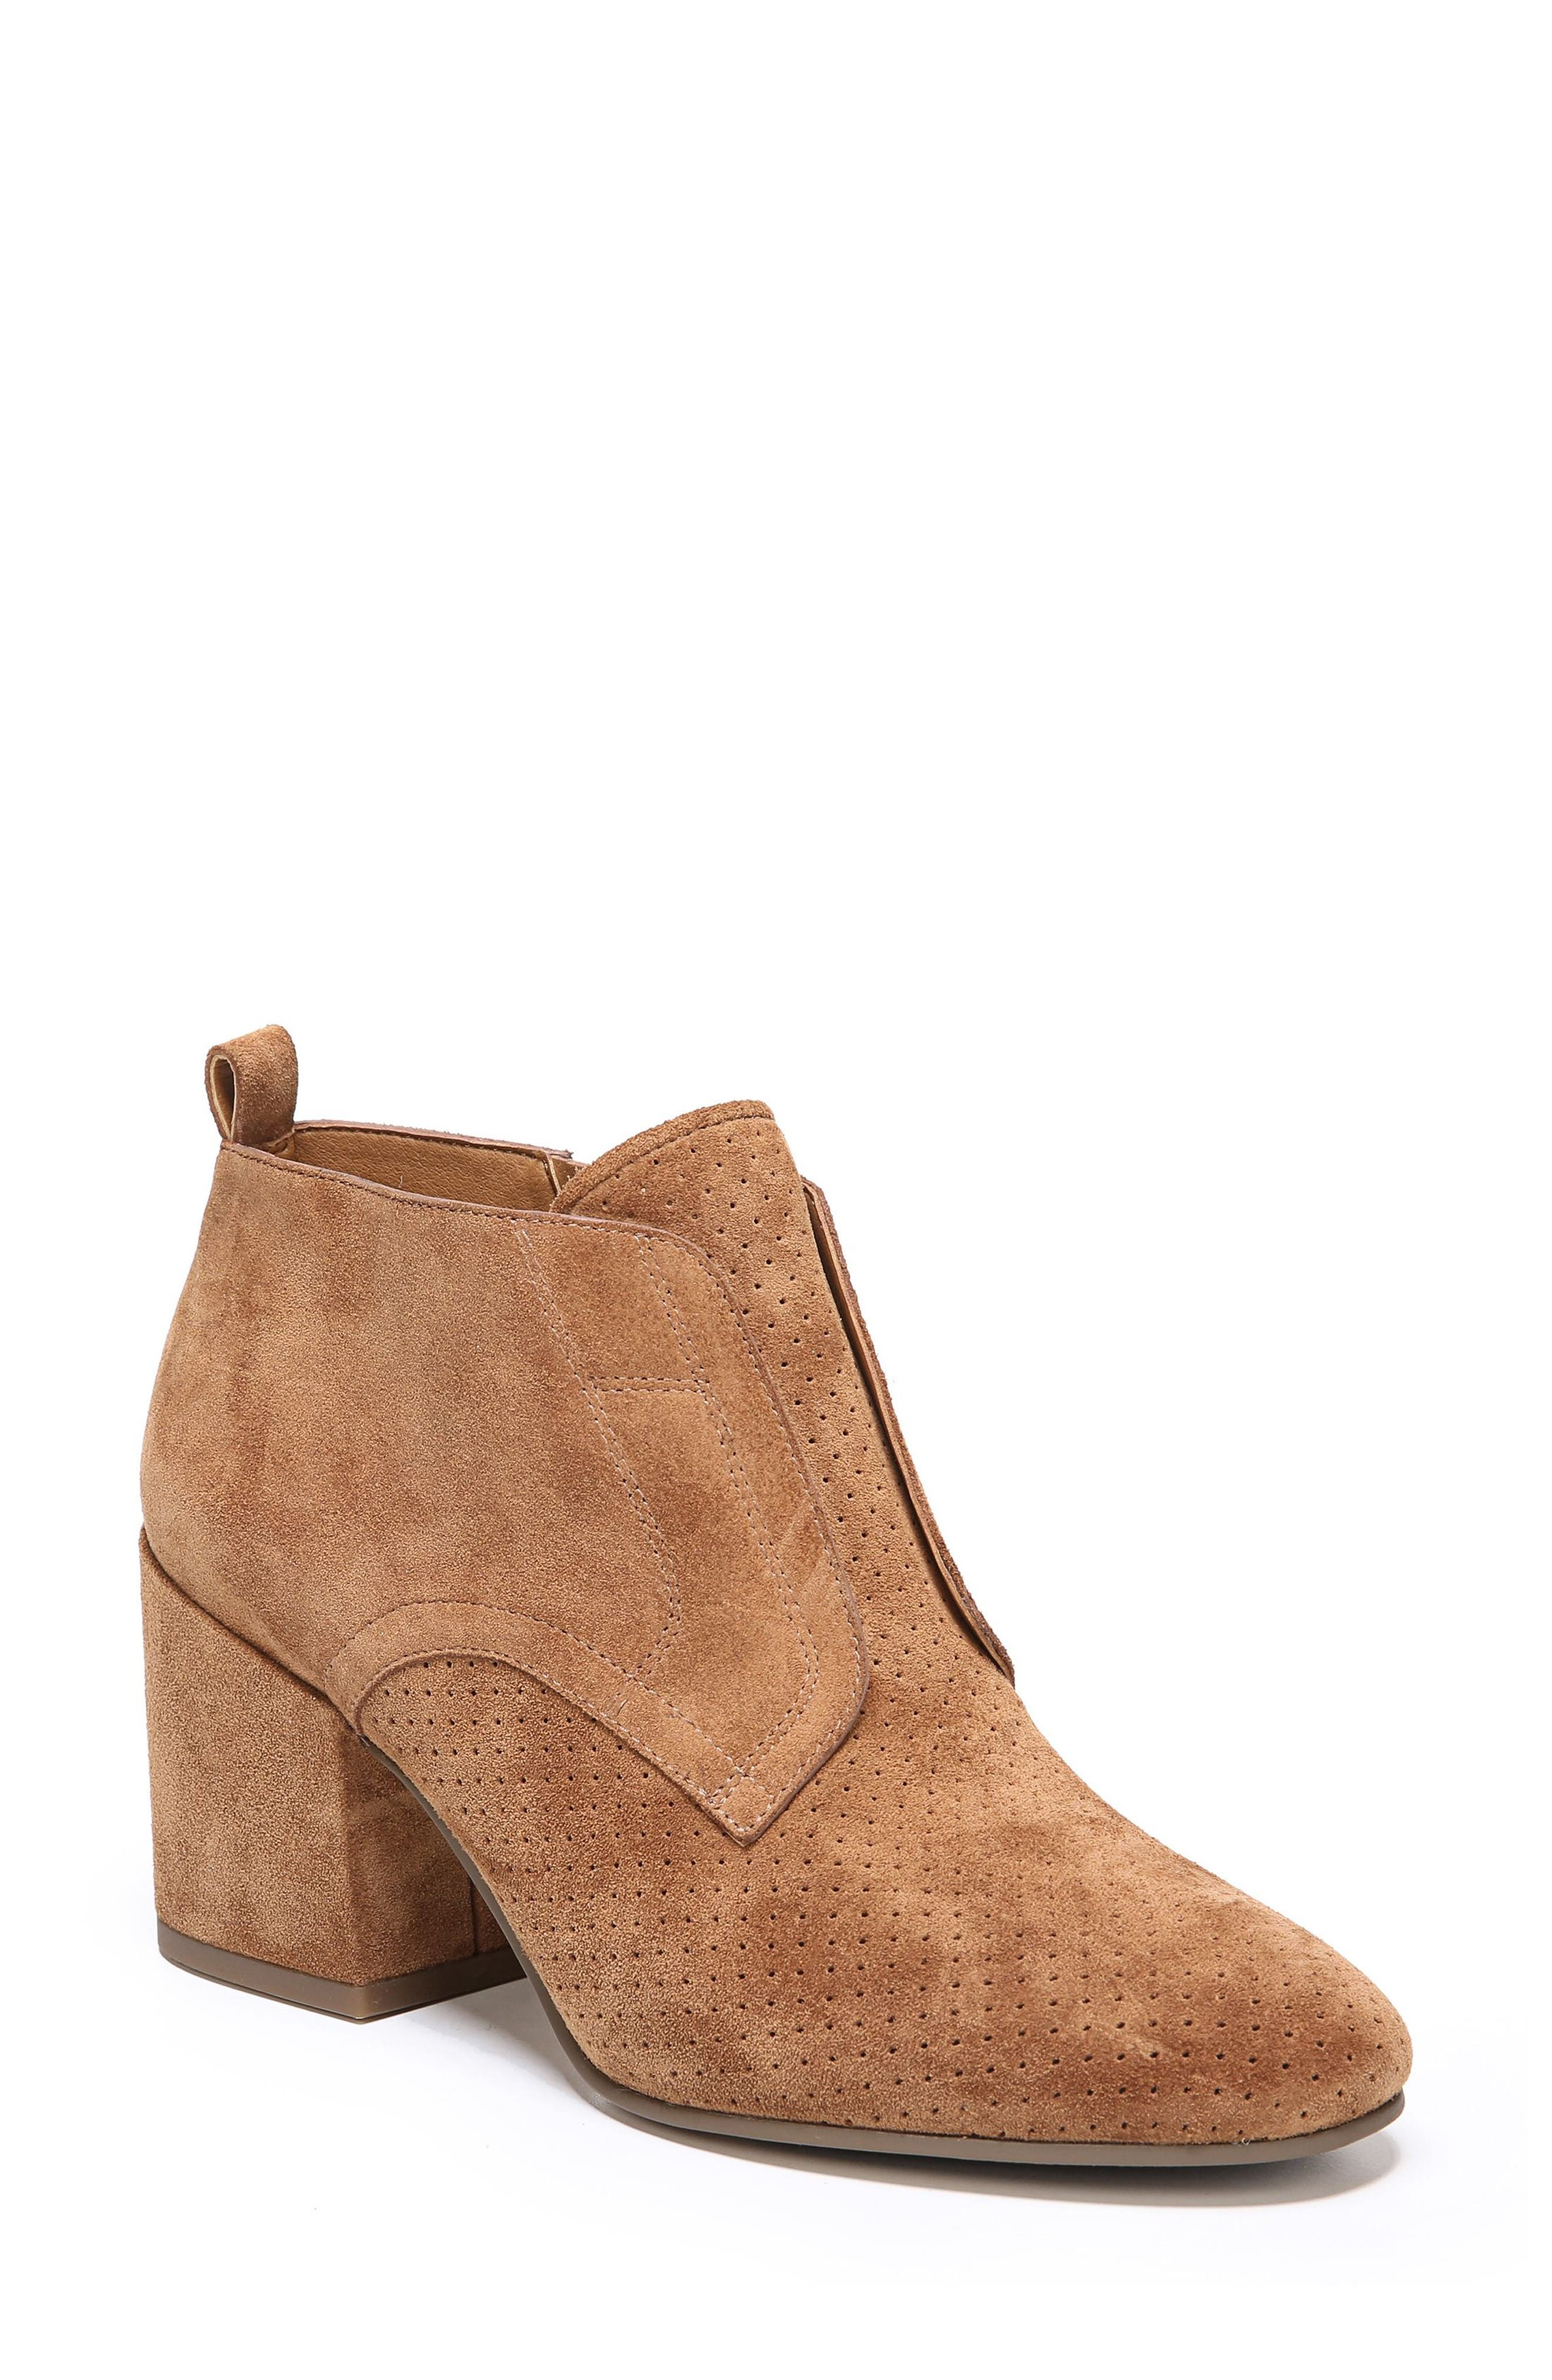 Alfie Bootie,                             Main thumbnail 1, color,                             Whiskey Suede